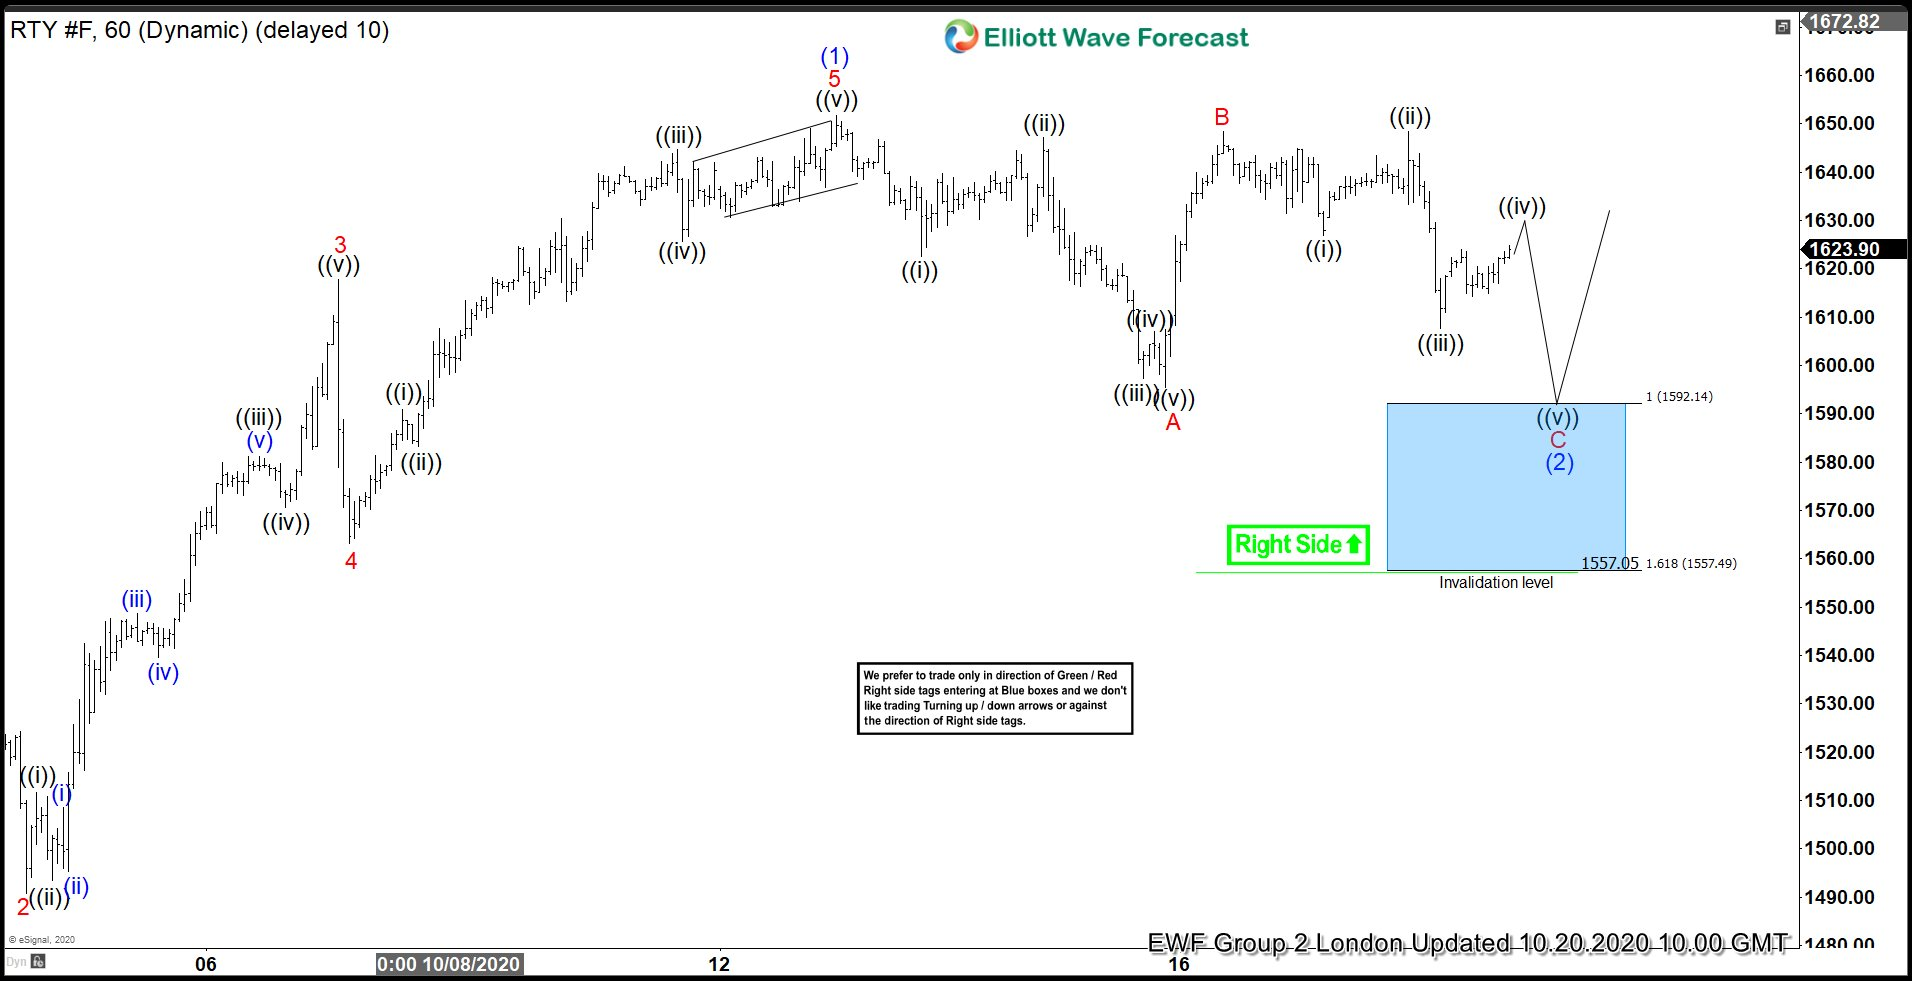 Russell Futures 10.20.2020 Elliott Wave Chart showing Blue Box